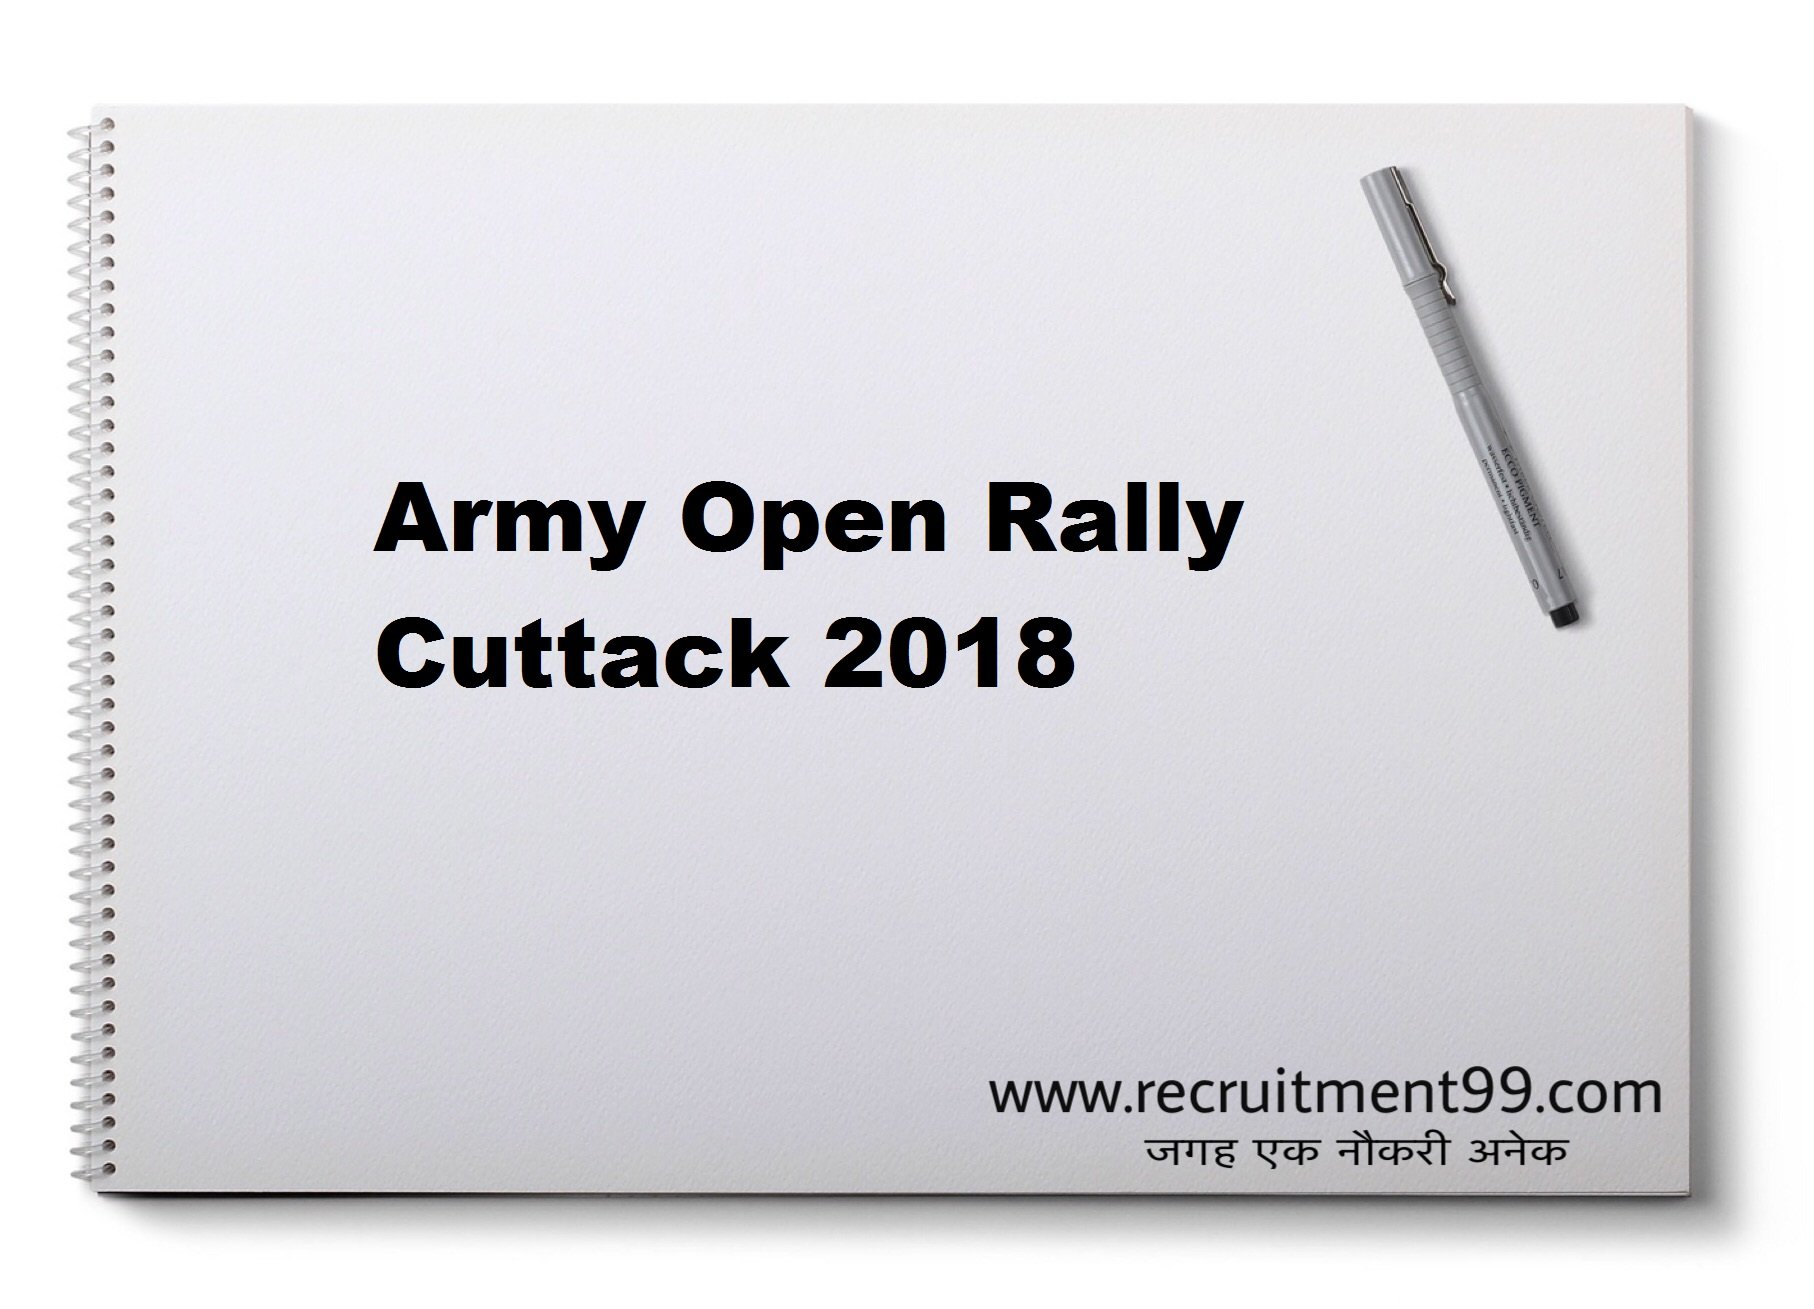 Army Open Rally Cuttack Recruitment Admit Card Result 2018